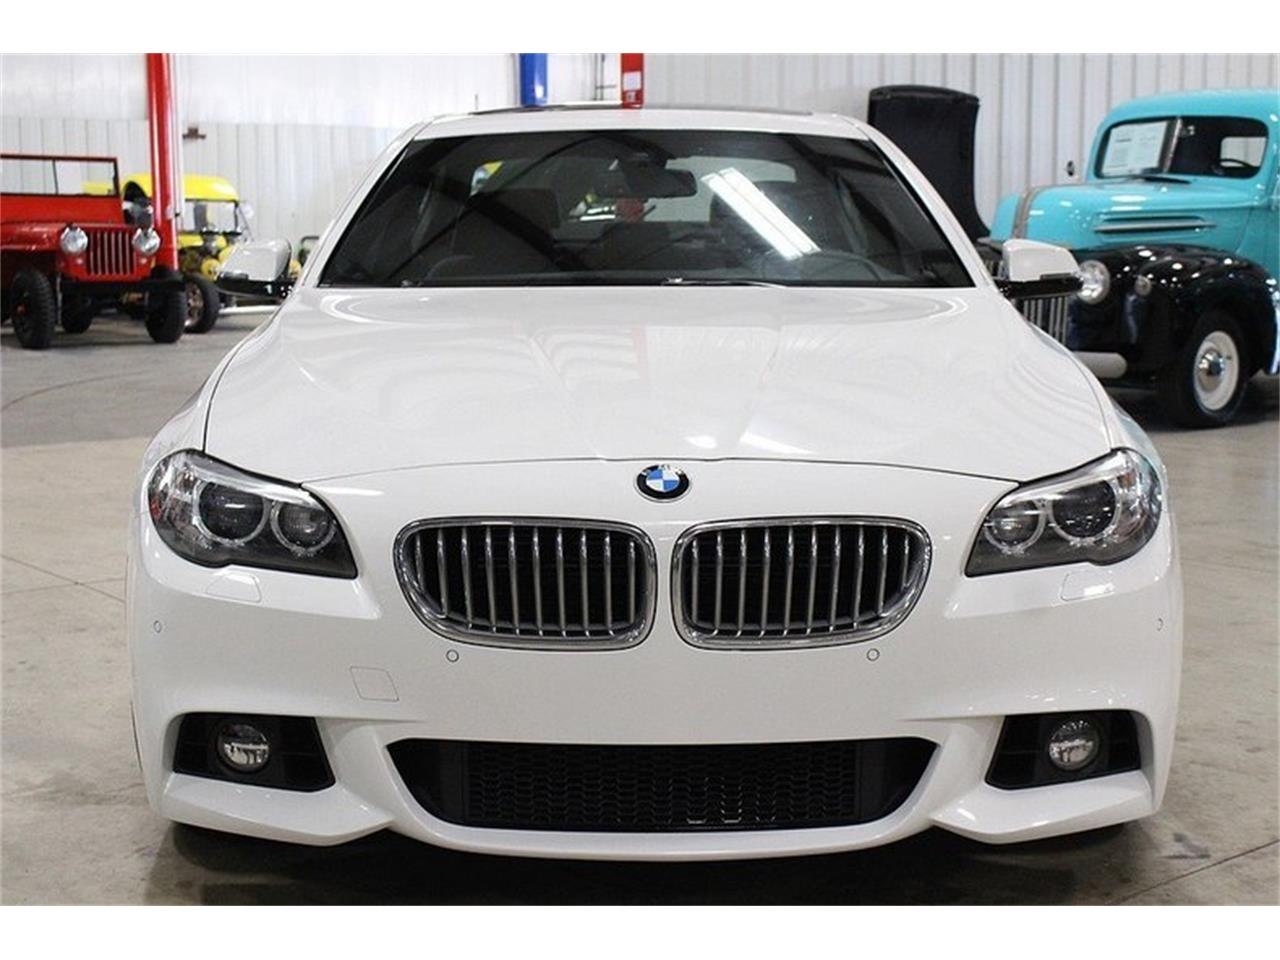 Large Picture of 2014 5 Series located in Michigan - $34,900.00 Offered by GR Auto Gallery - M41M